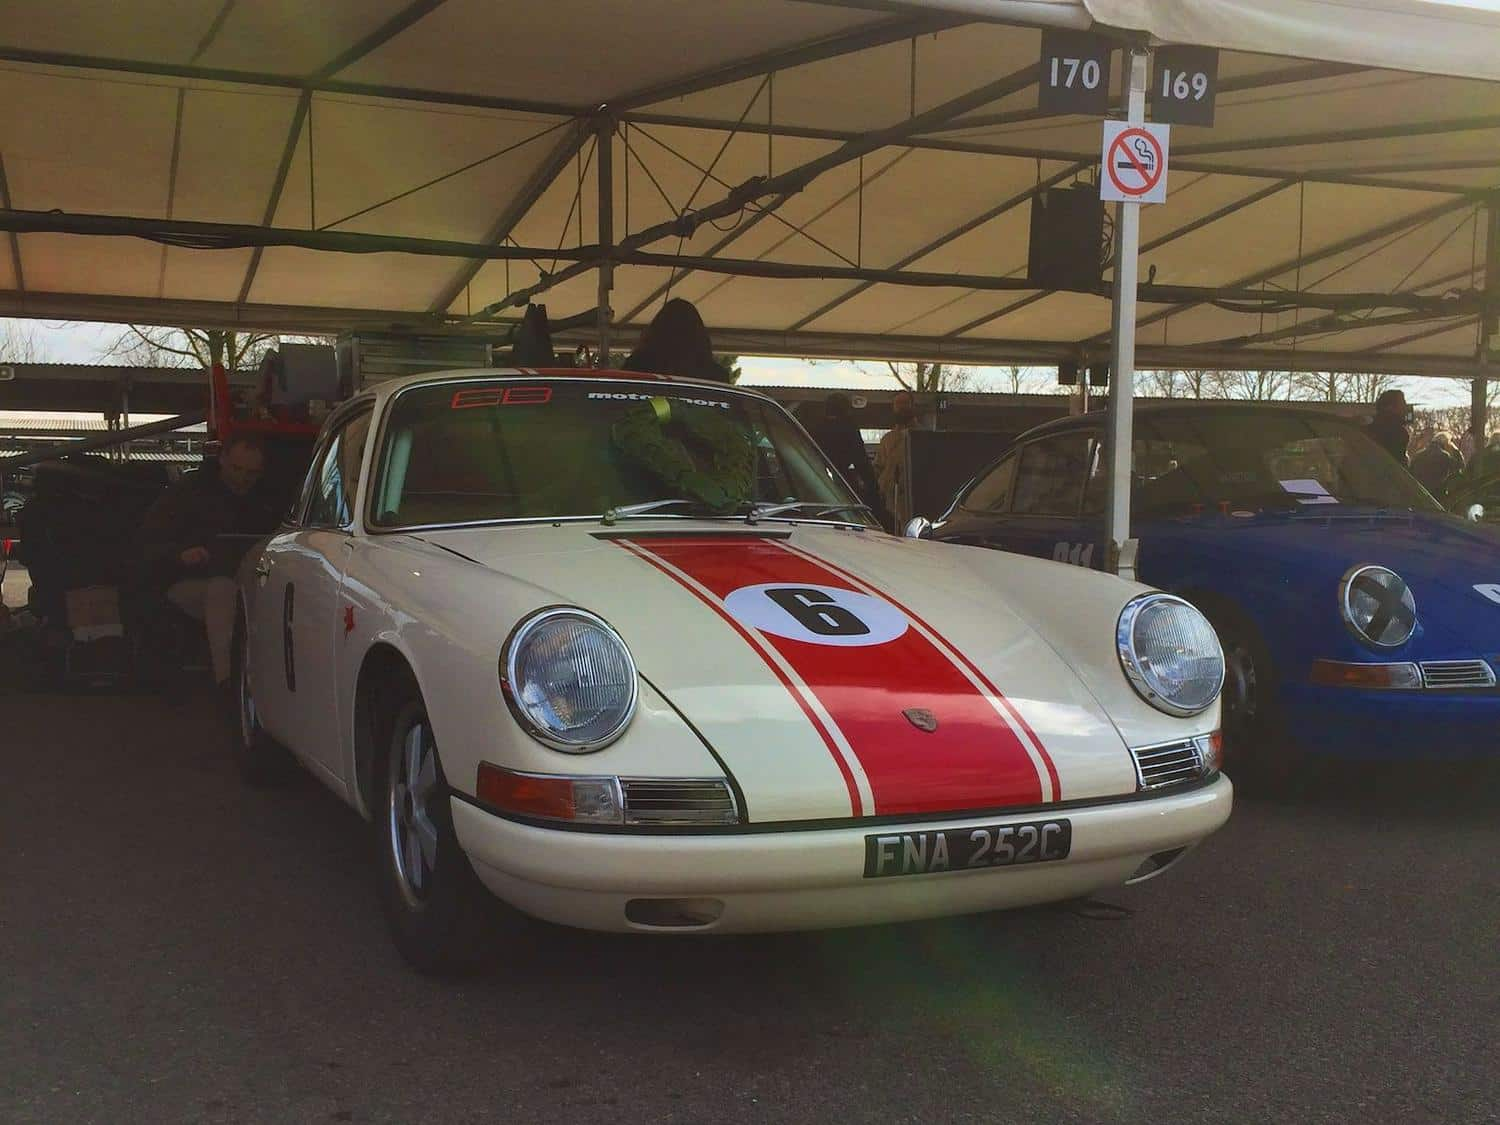 This Porsche 911 finished second in the 901/911 race at the 73rd Goodwood Members' Meeting in 2015